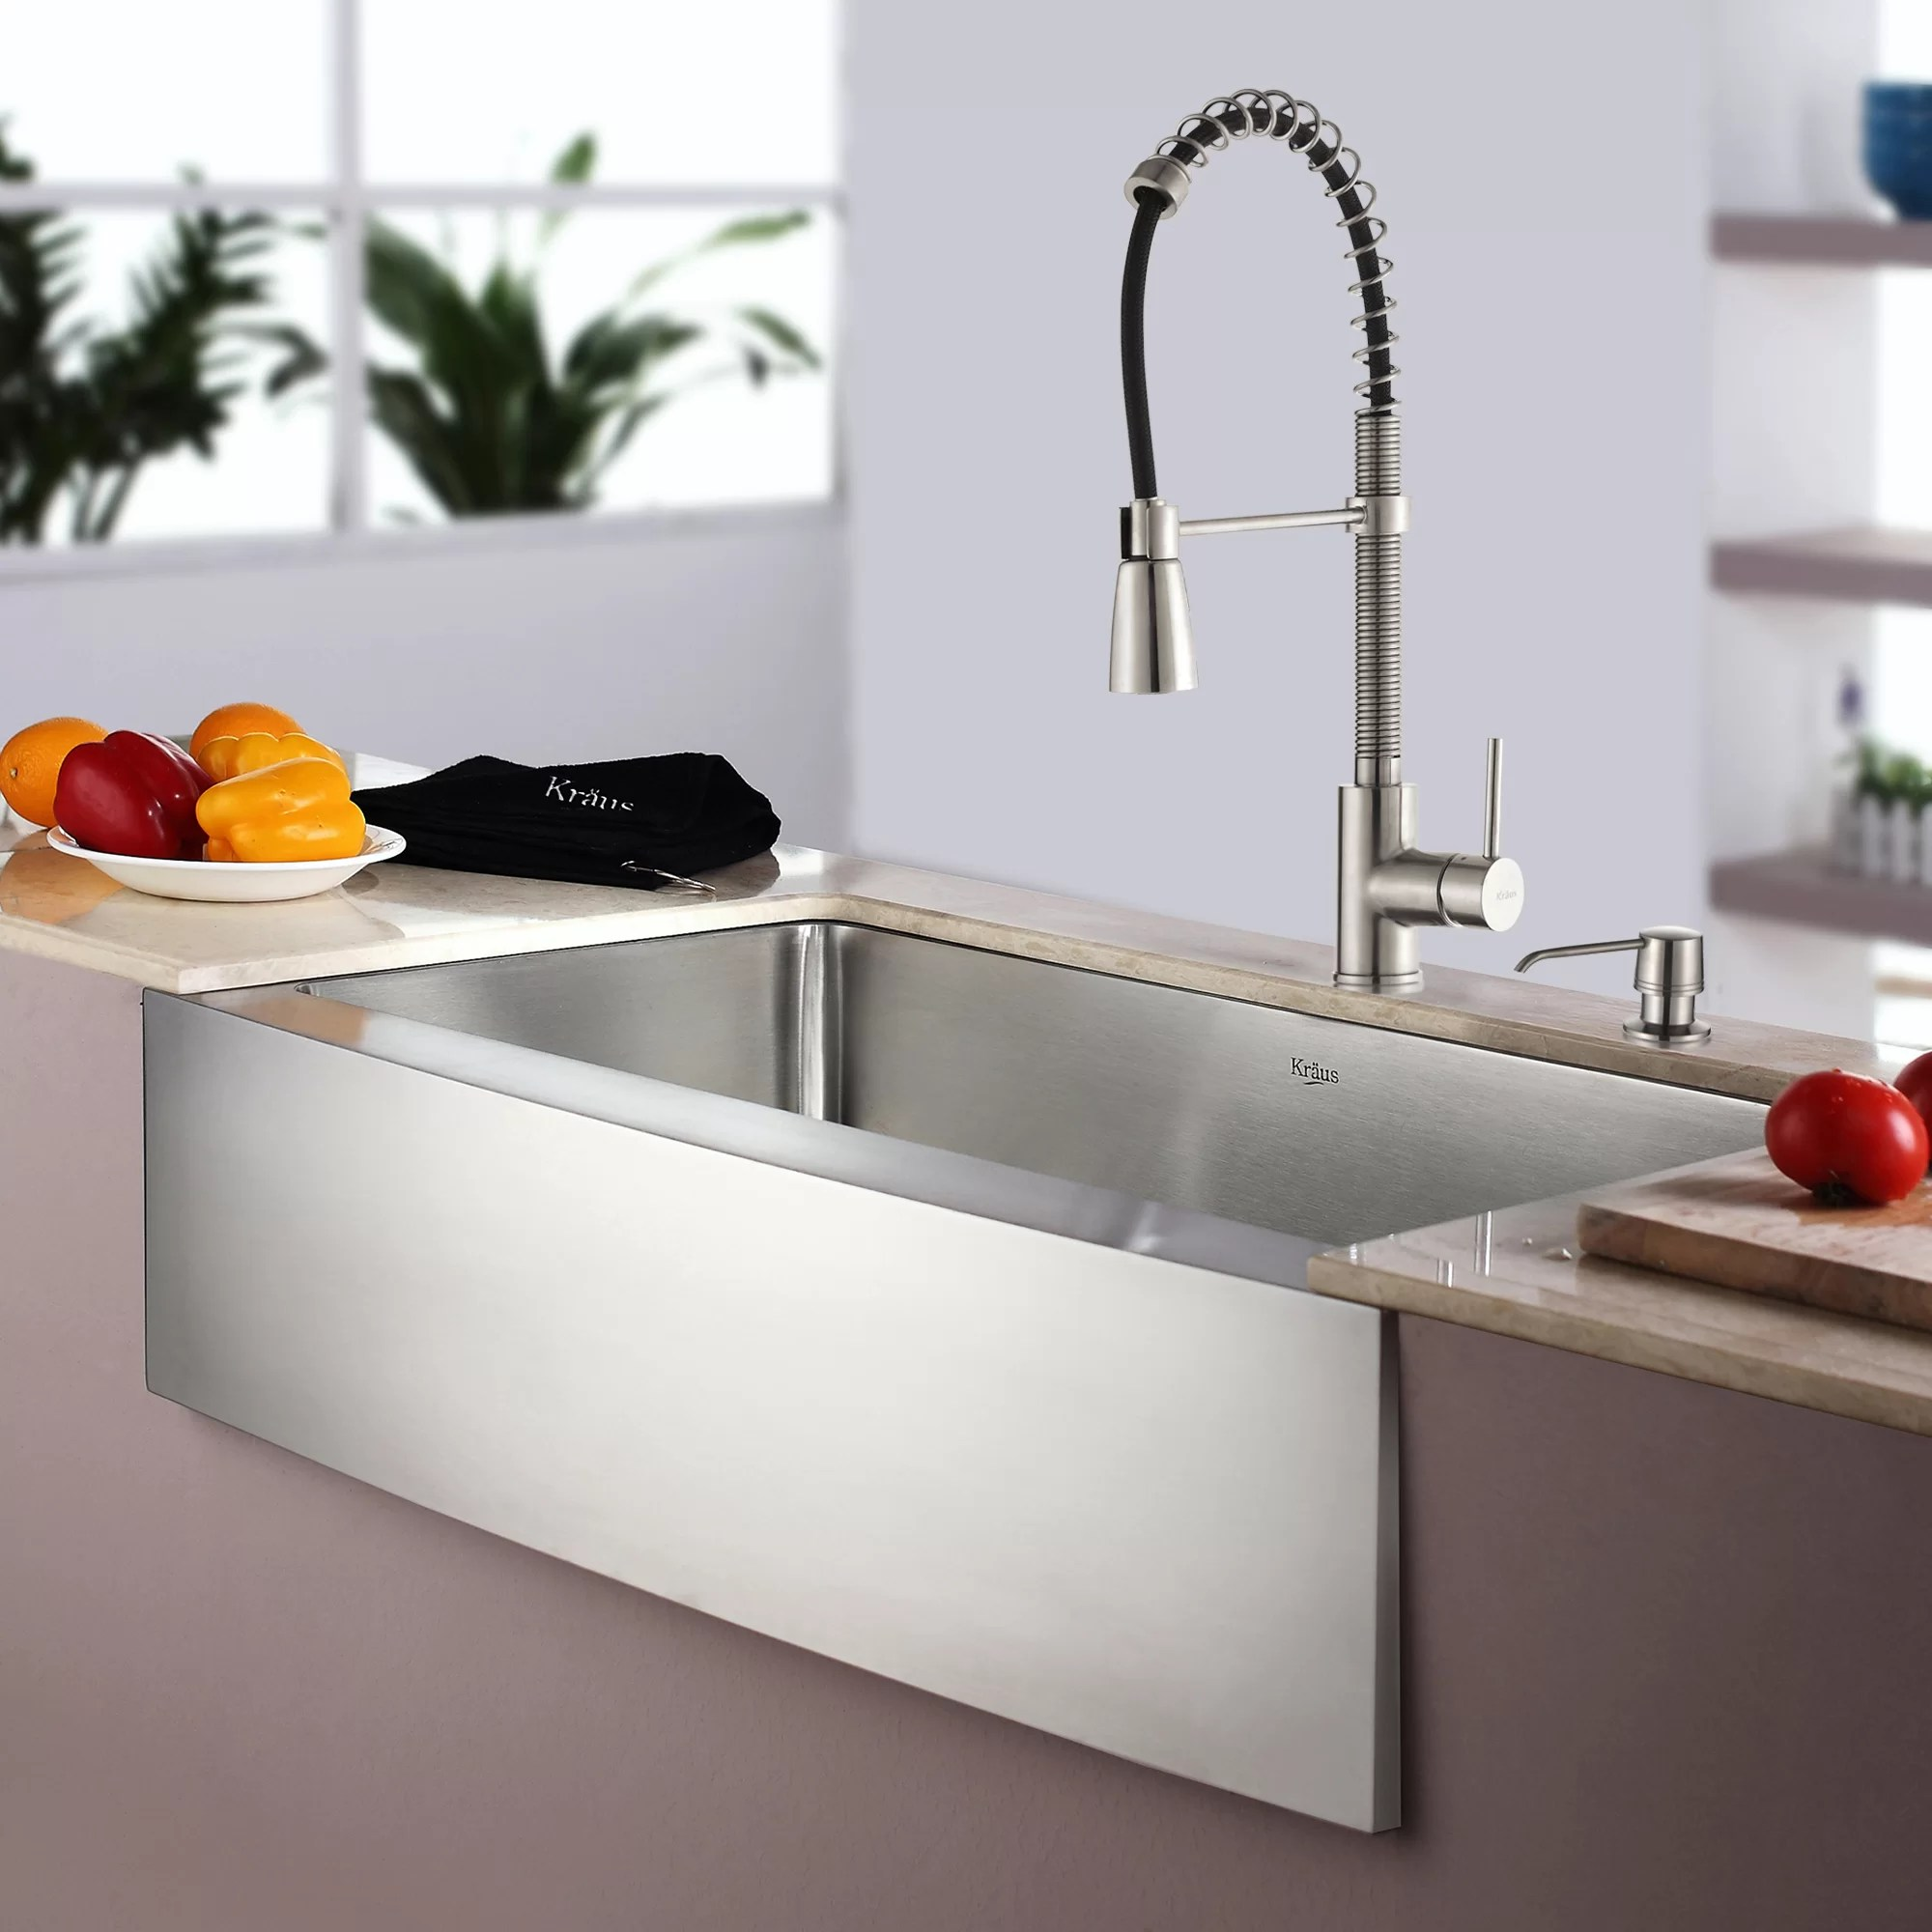 kitchen sinks and faucets rochester remodeling kraus combos 33 l x 21 w single basin farmhouse apron sink with faucet reviews wayfair ca